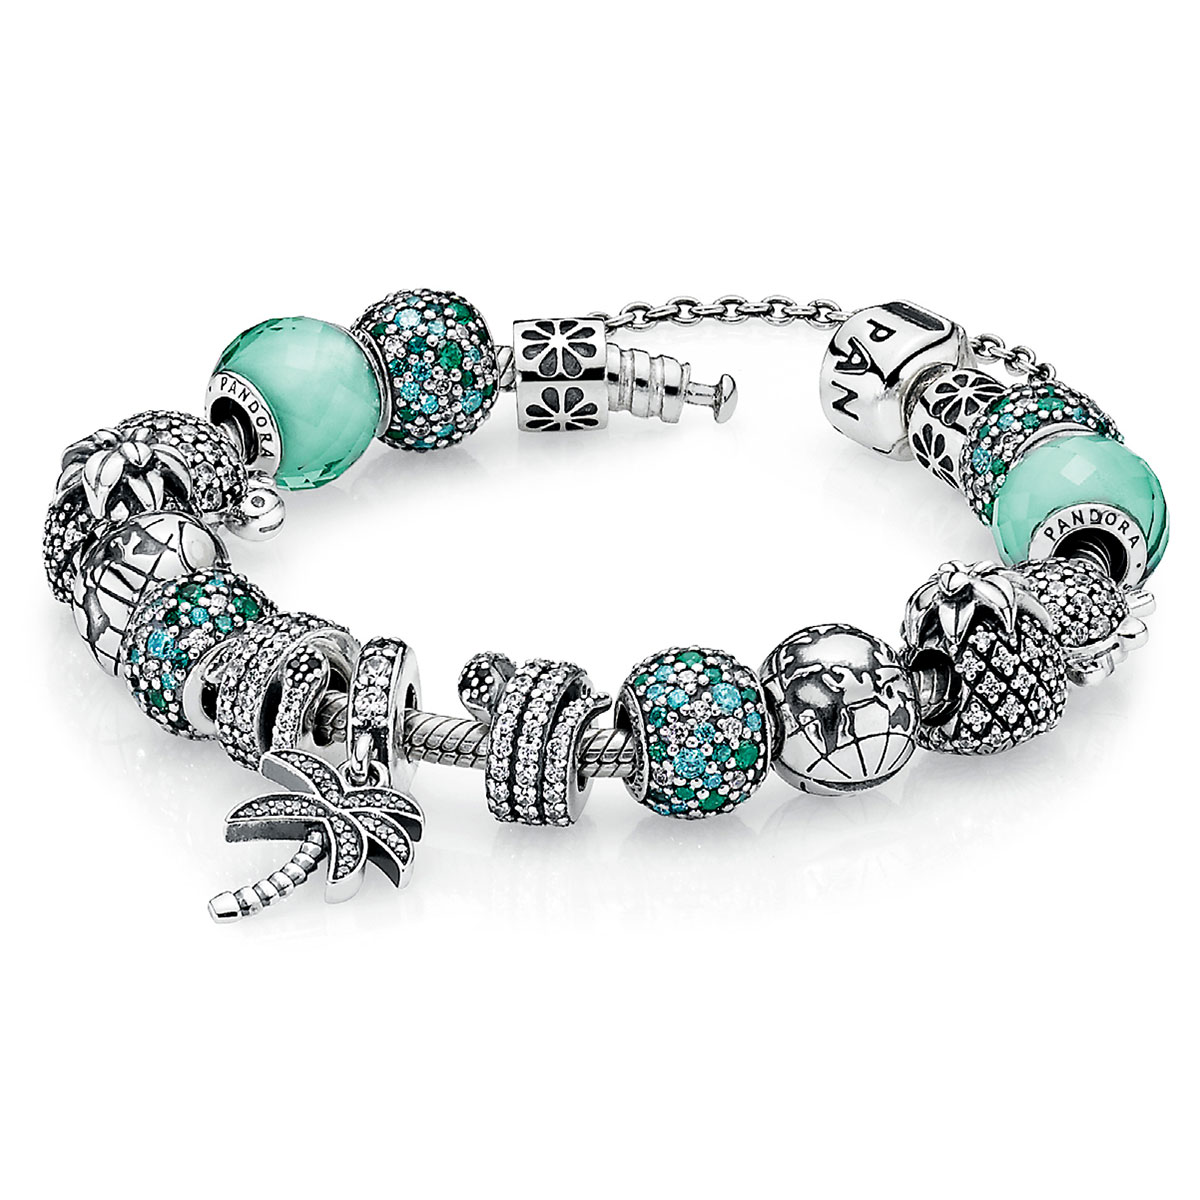 Pandora Design Bracelet Ideas - The Best Bracelet 2017